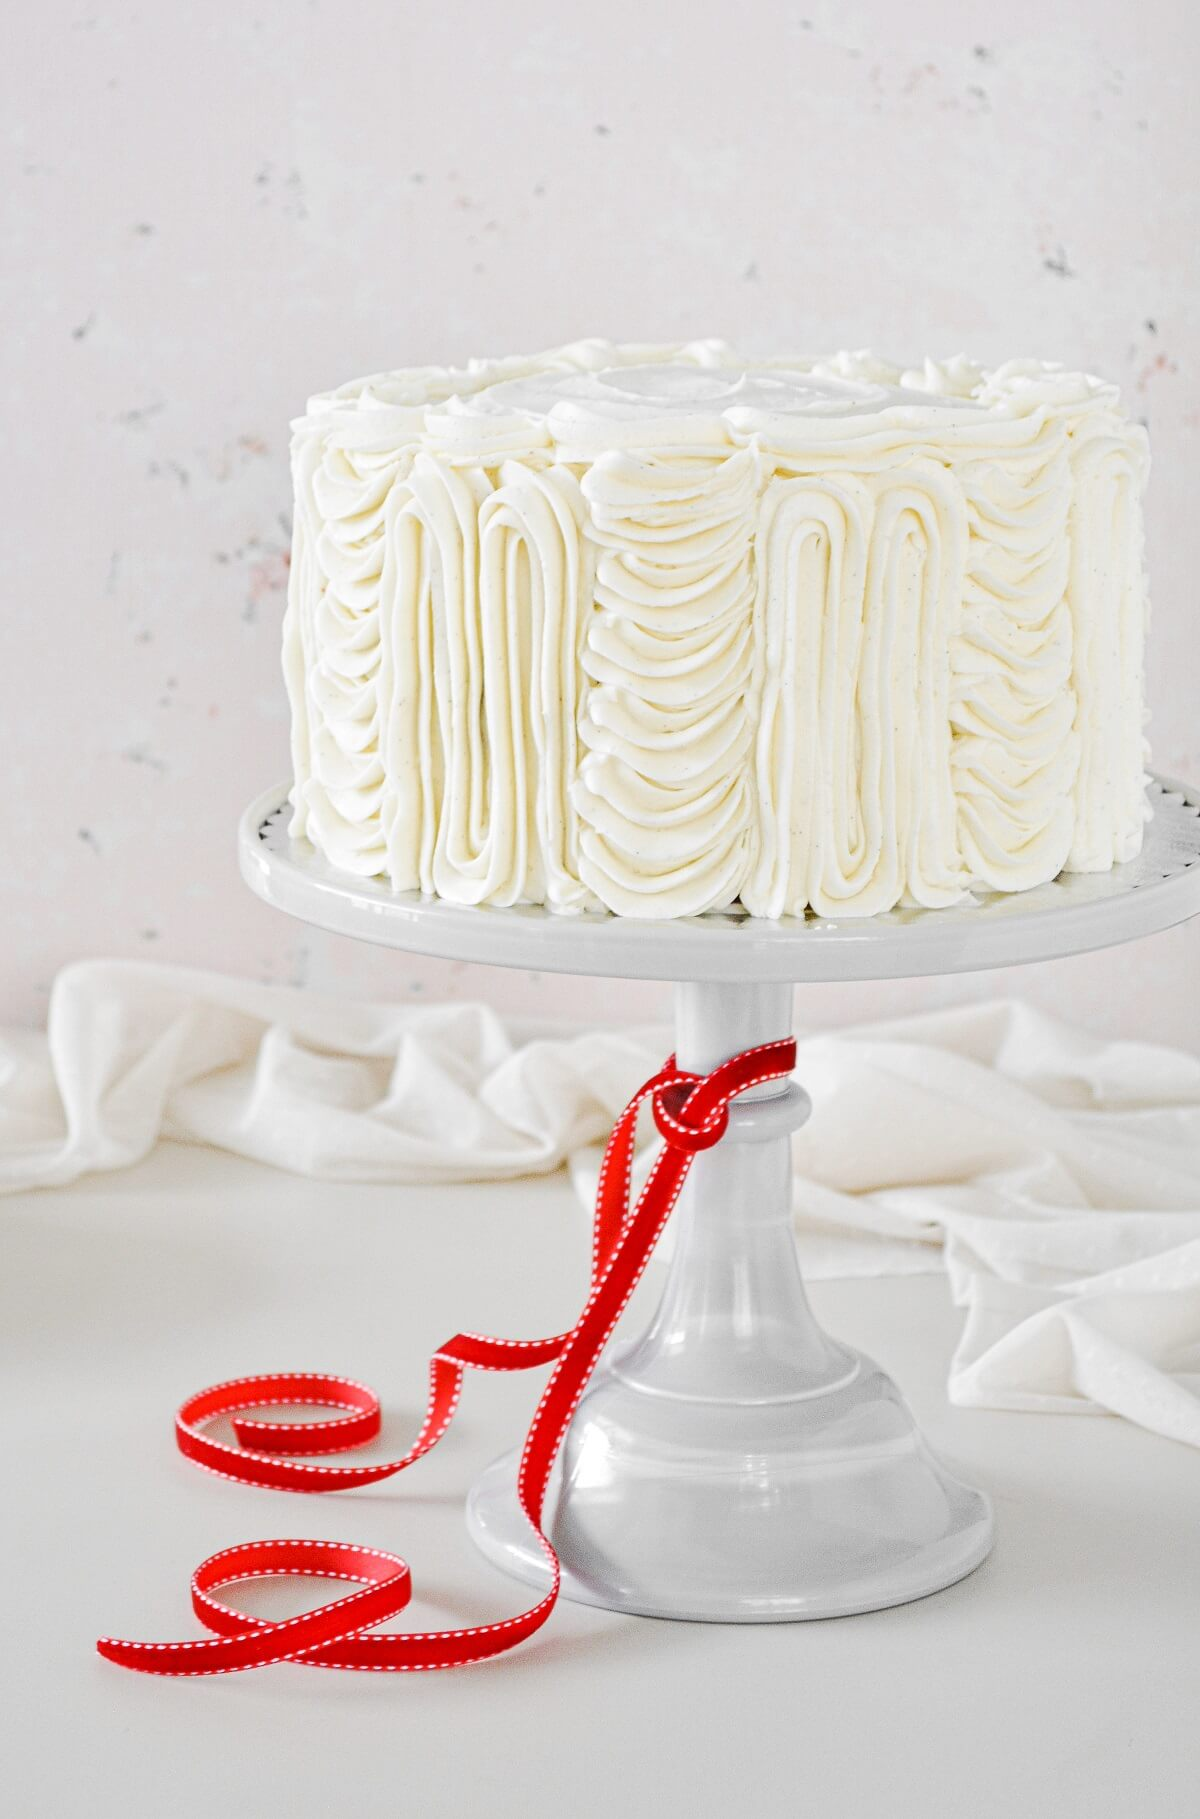 Red velvet cake on a light gray cake stand, with a red ribbon tied around the cake stand.